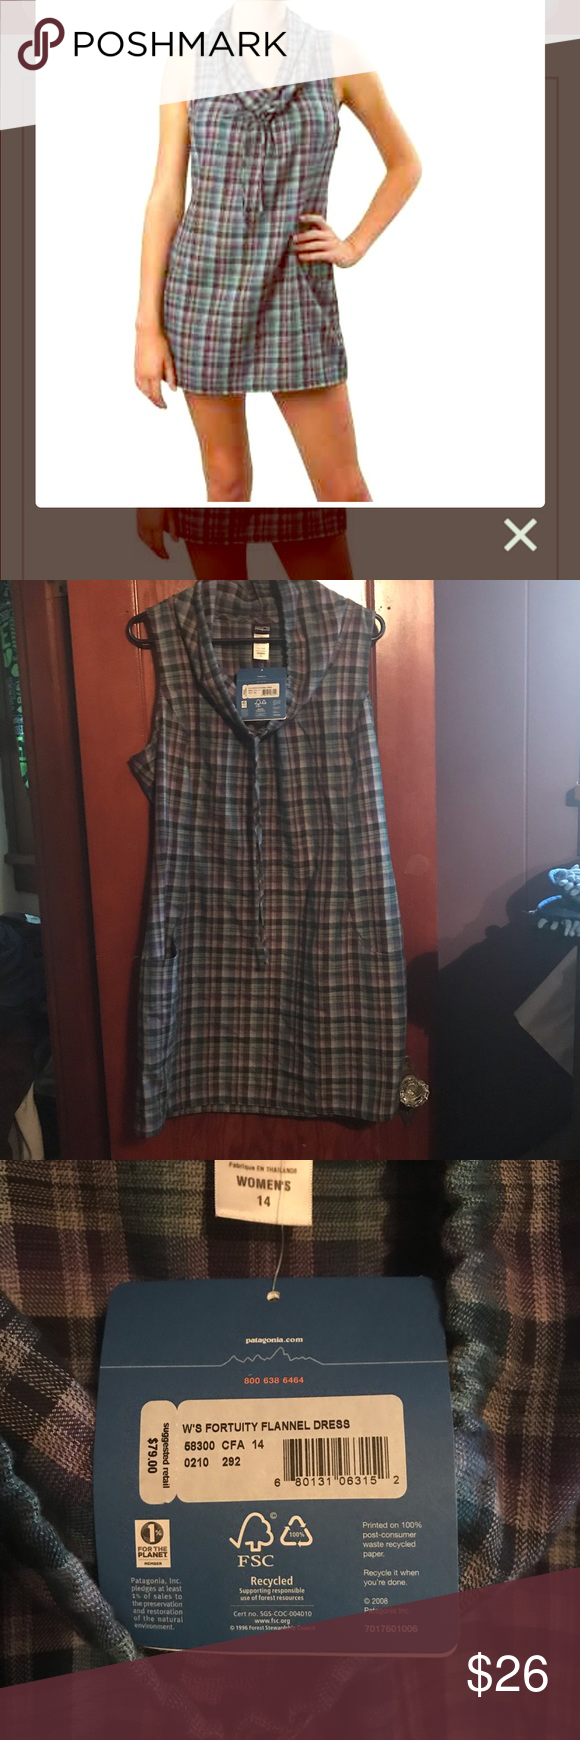 6d0e49817 Patagonia Fortuity Flannel dress NWT